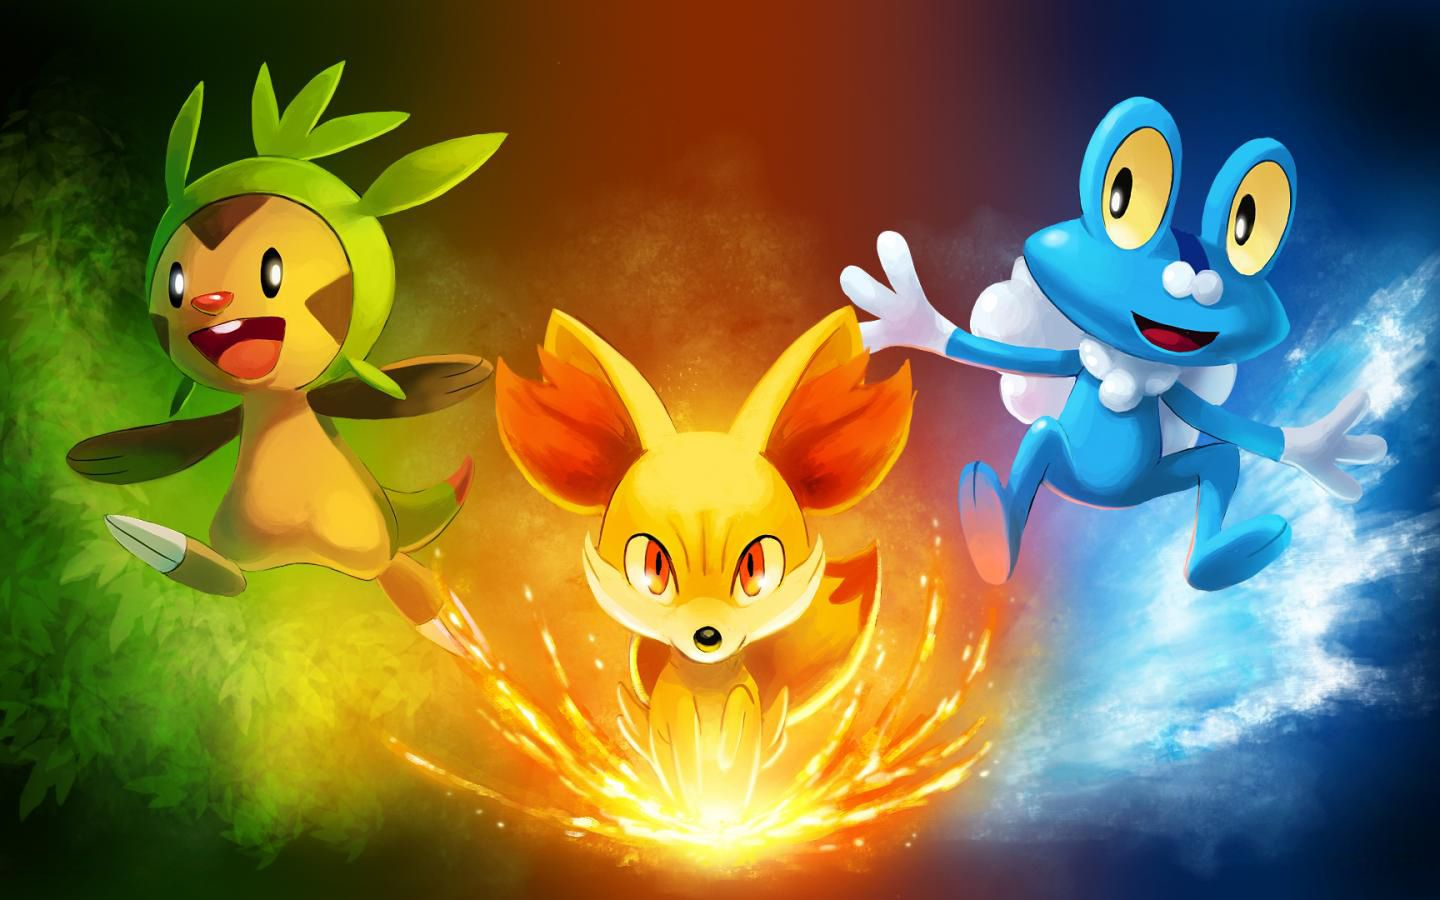 Wallpaperspoints Pokemon Hd Pc Wallpaper Full Hd Wallpapers Points Cool Pokemon Wallpapers Cute Pokemon Wallpaper Pokemon